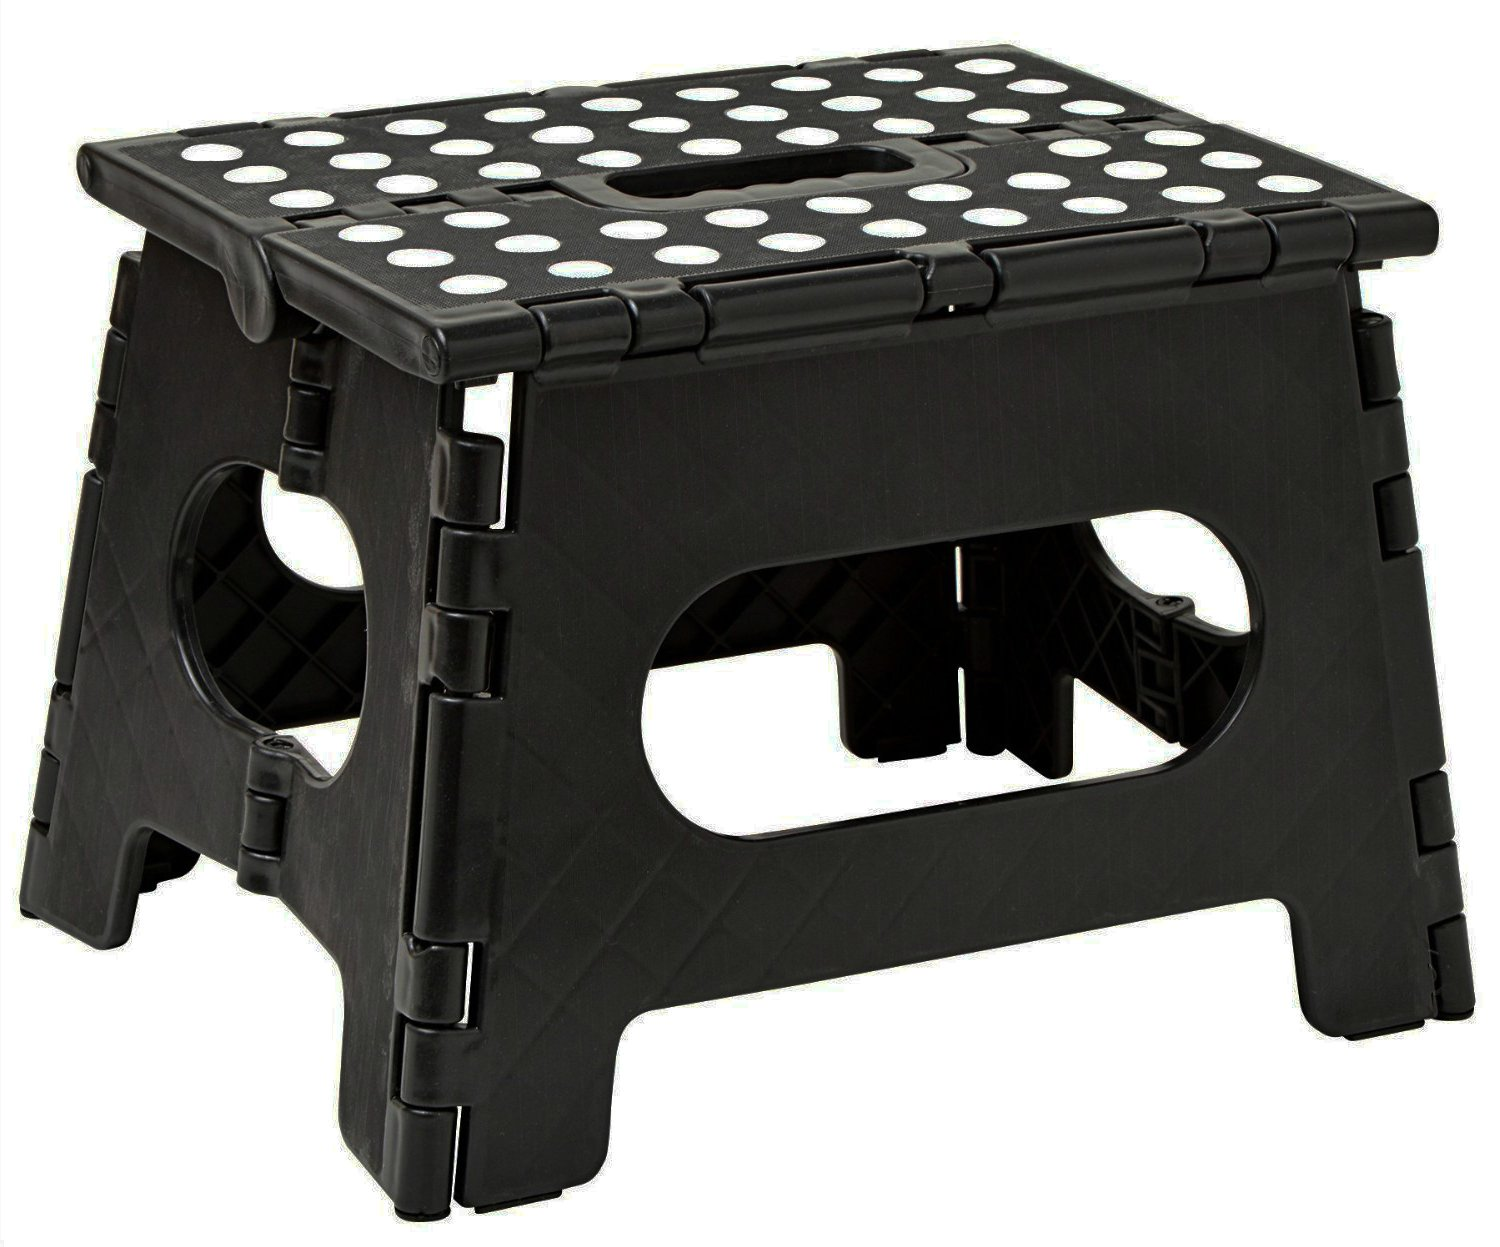 Folding Step Stool The Lightweight Step Stool Is Sturdy